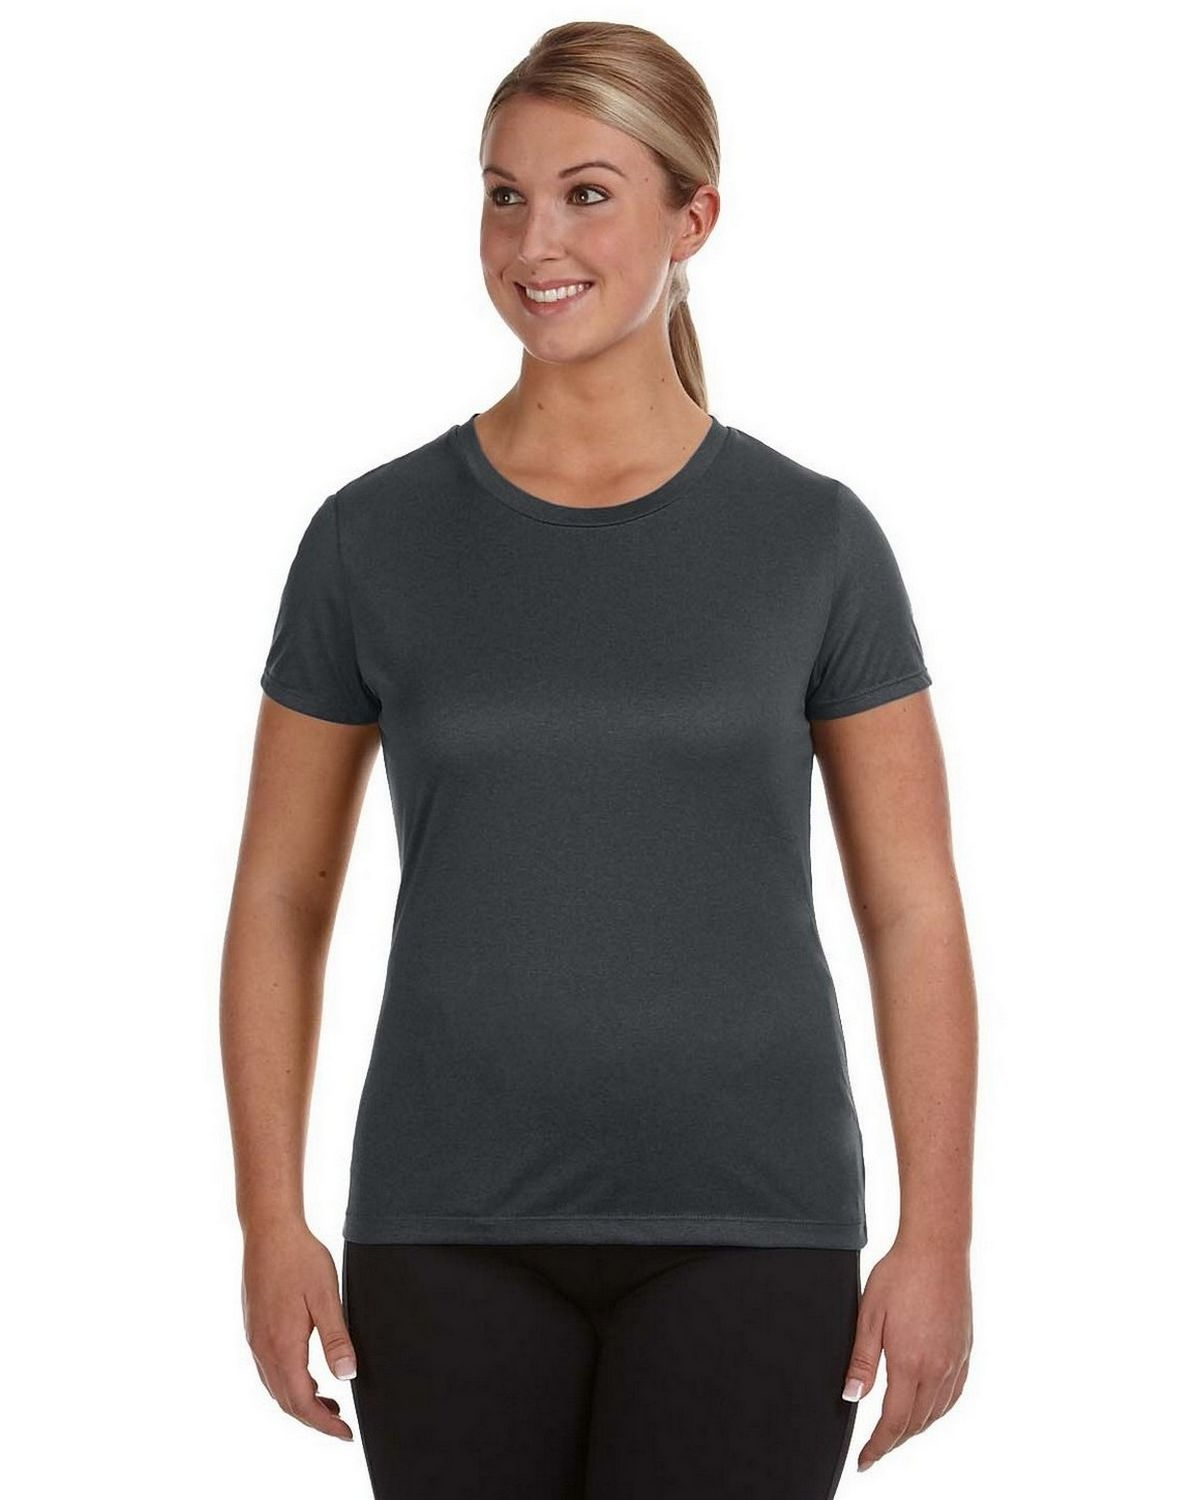 Champion CV30 Women's Vapor T Shirt - Black Heather - S #vapor